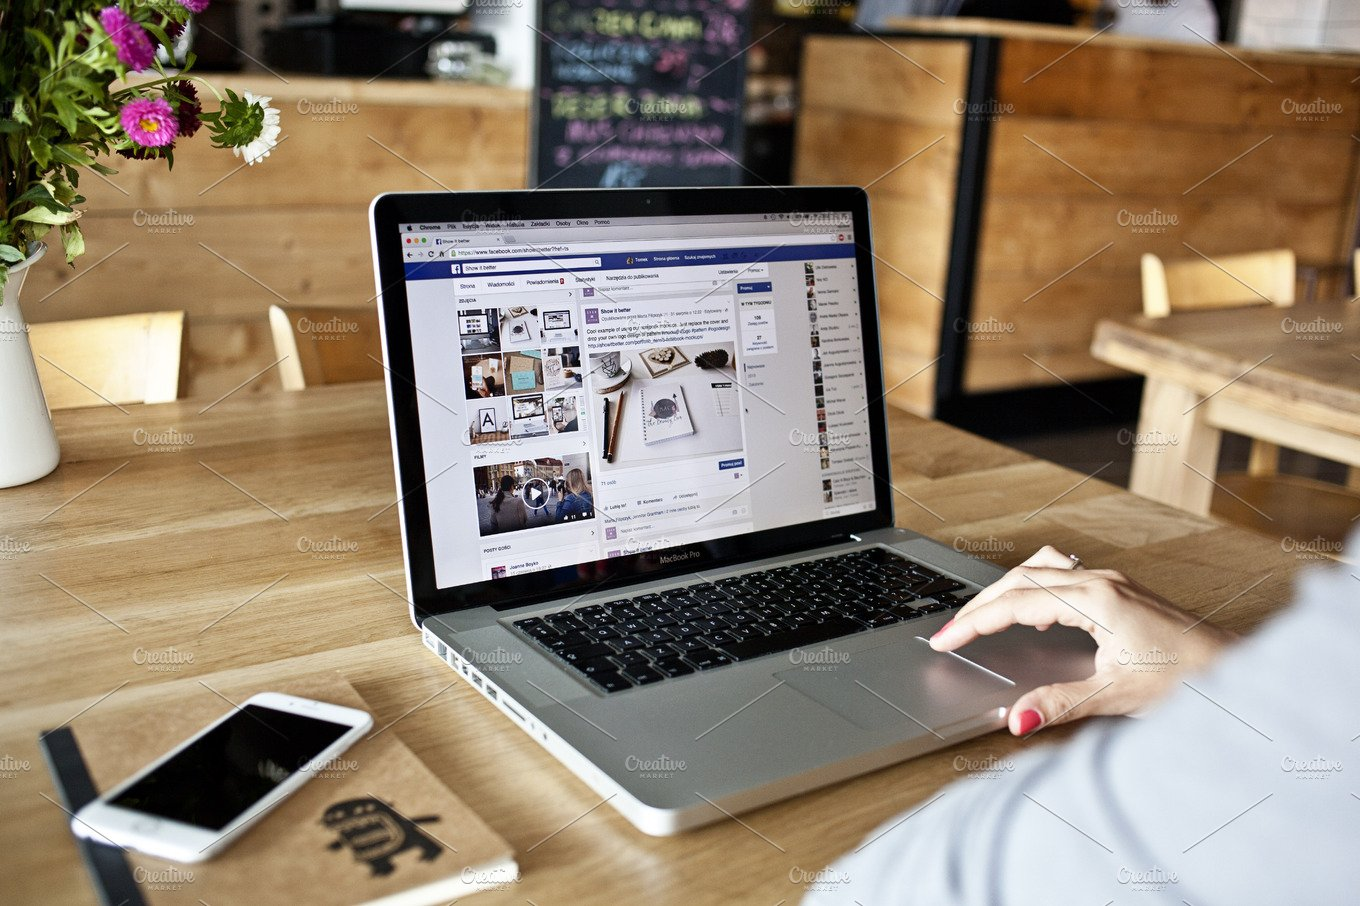 macbook pro in a bistro cafe photo business photos creative market. Black Bedroom Furniture Sets. Home Design Ideas